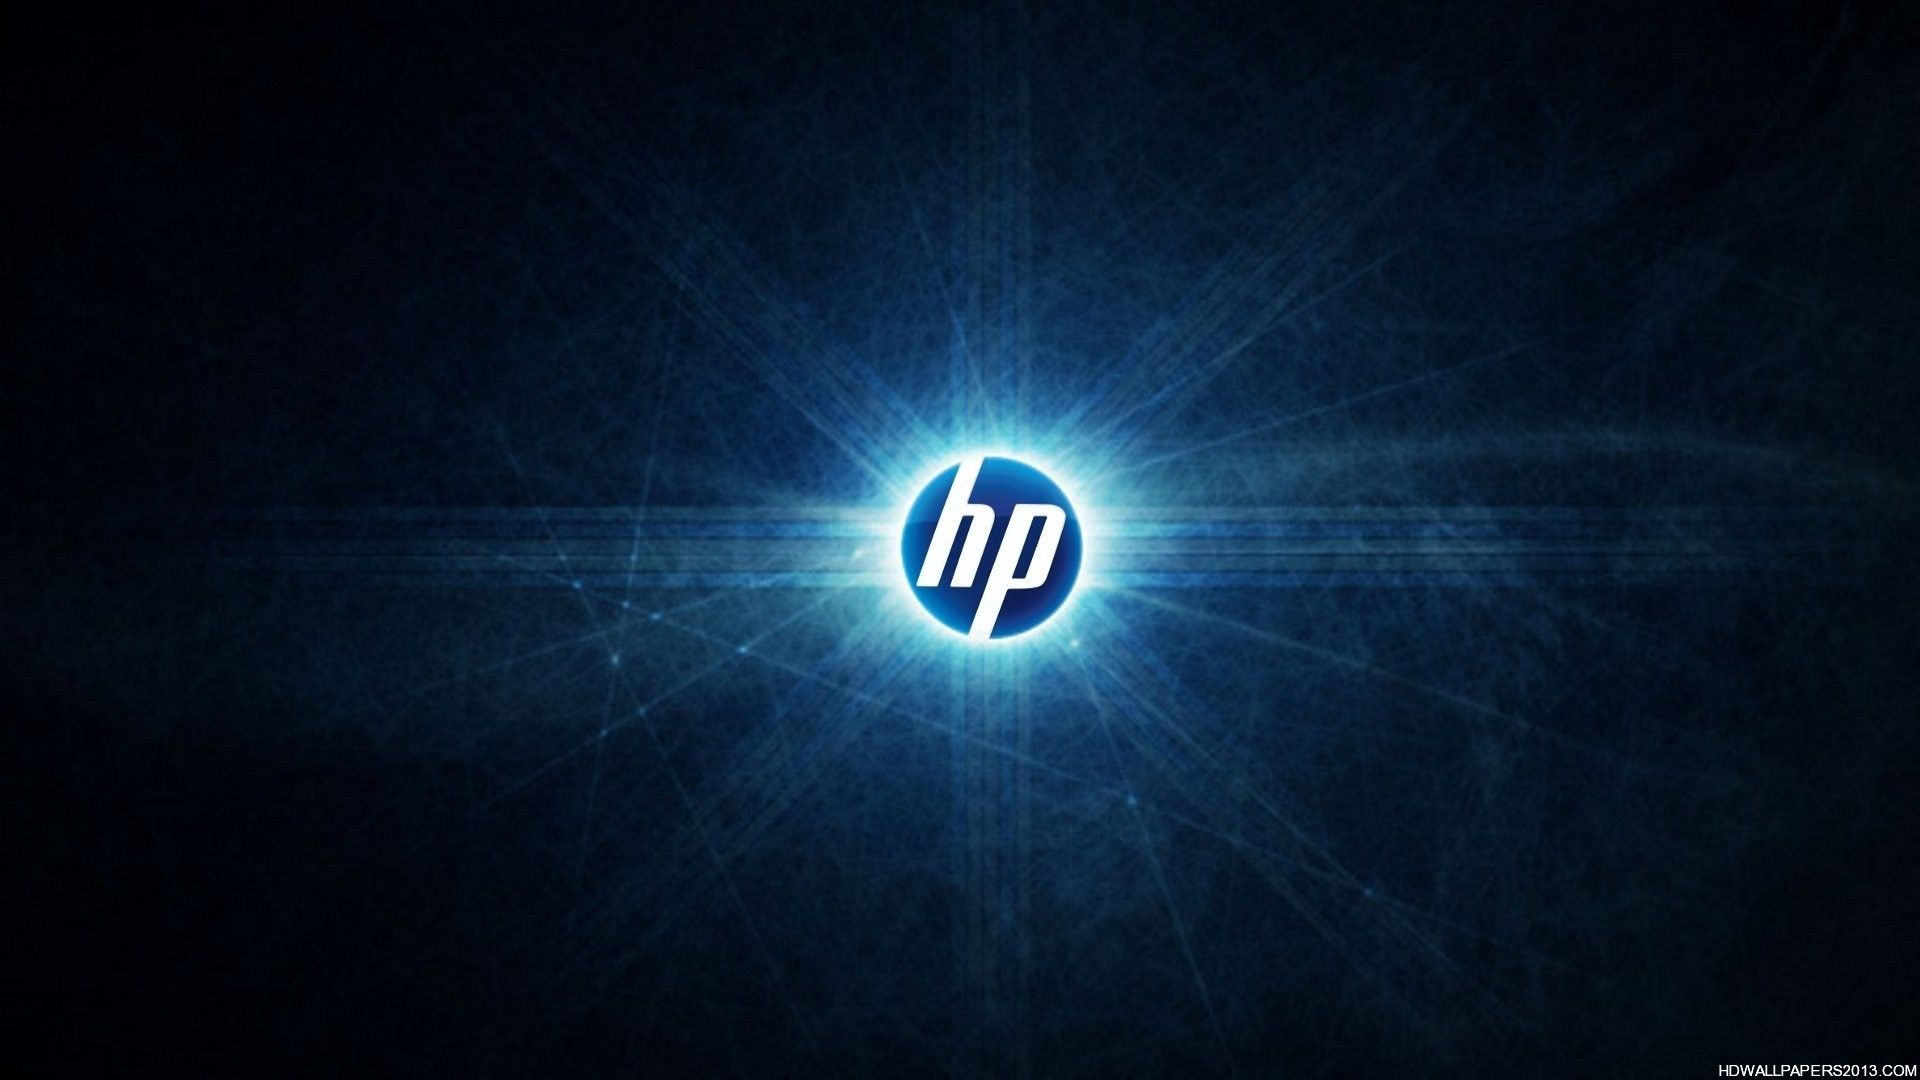 HP Wallpapers - Top Free HP Backgrounds